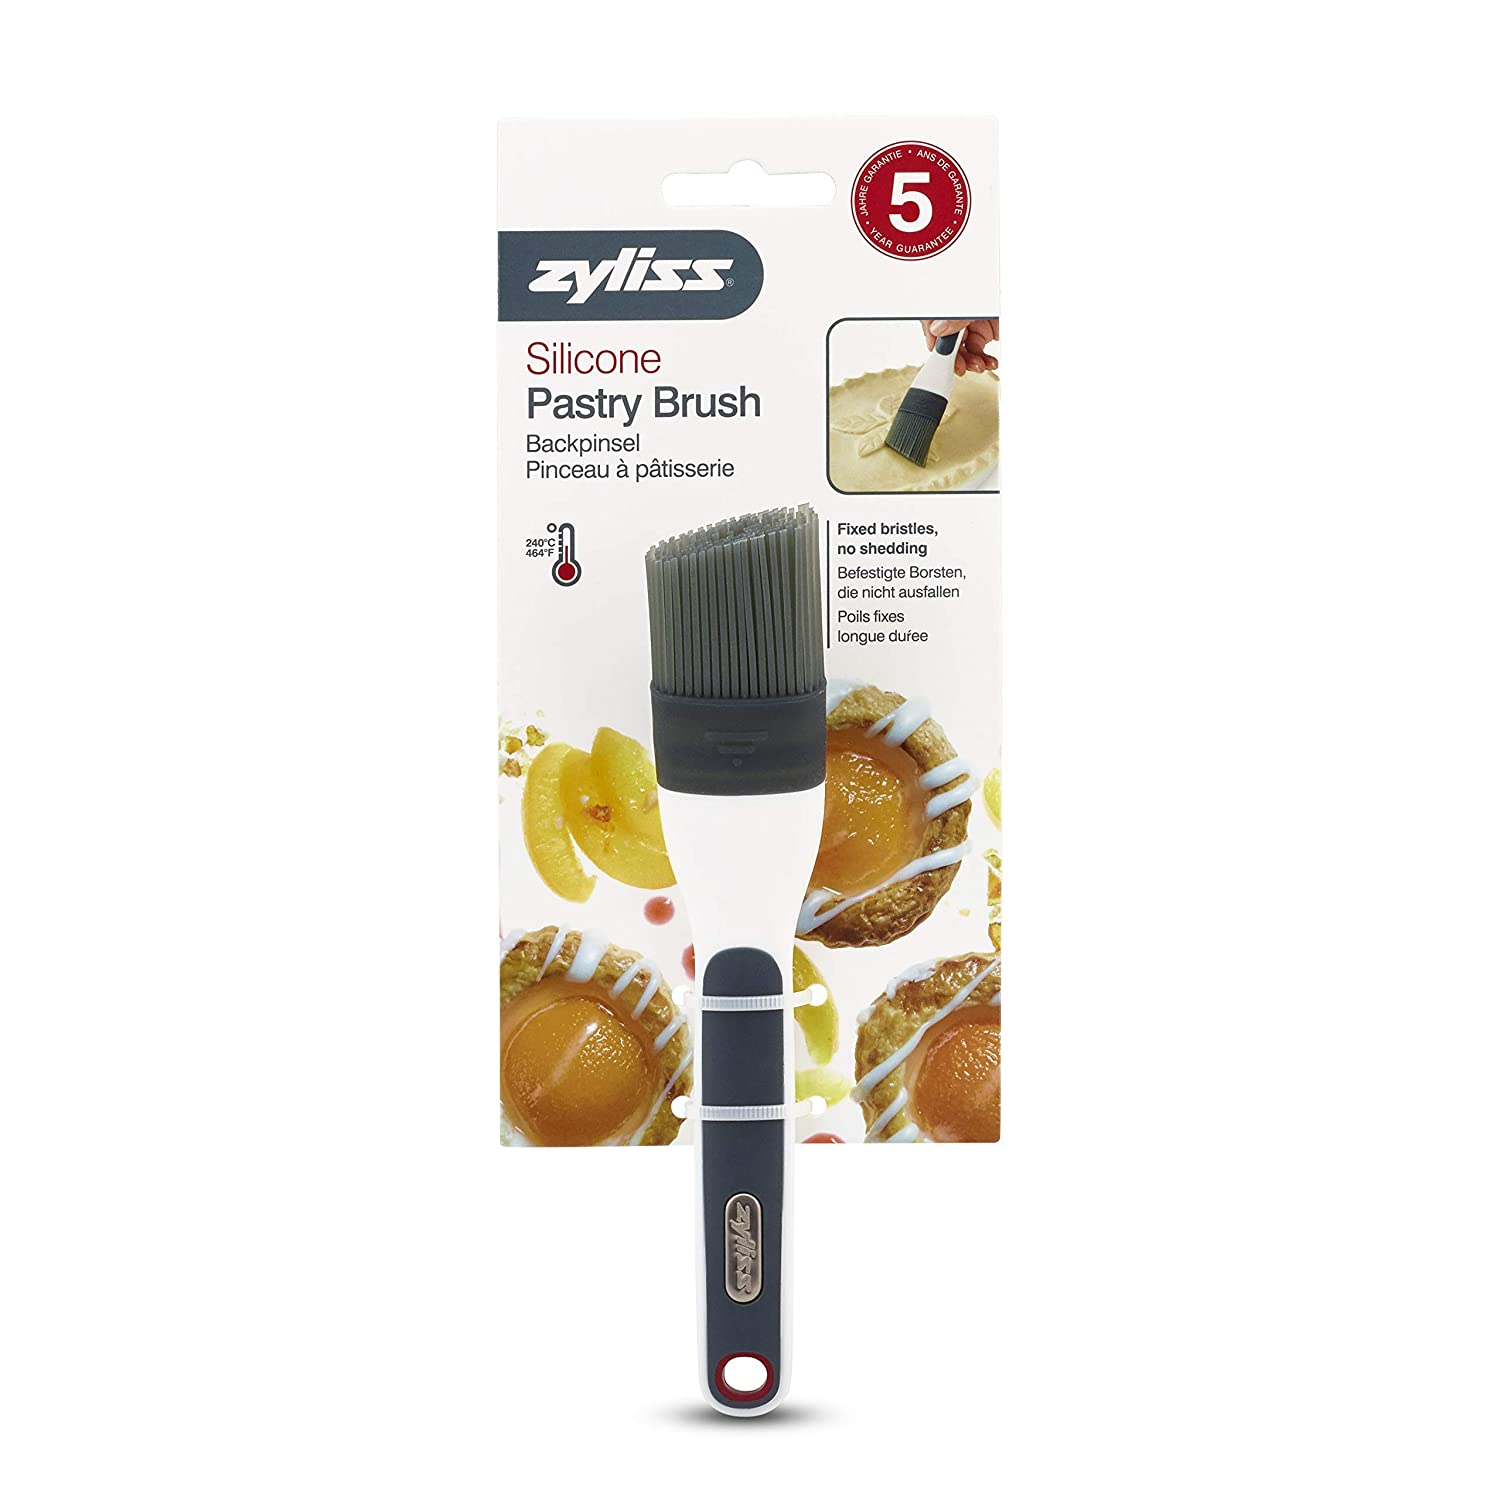 White Zyliss Silicone Pastry Brush